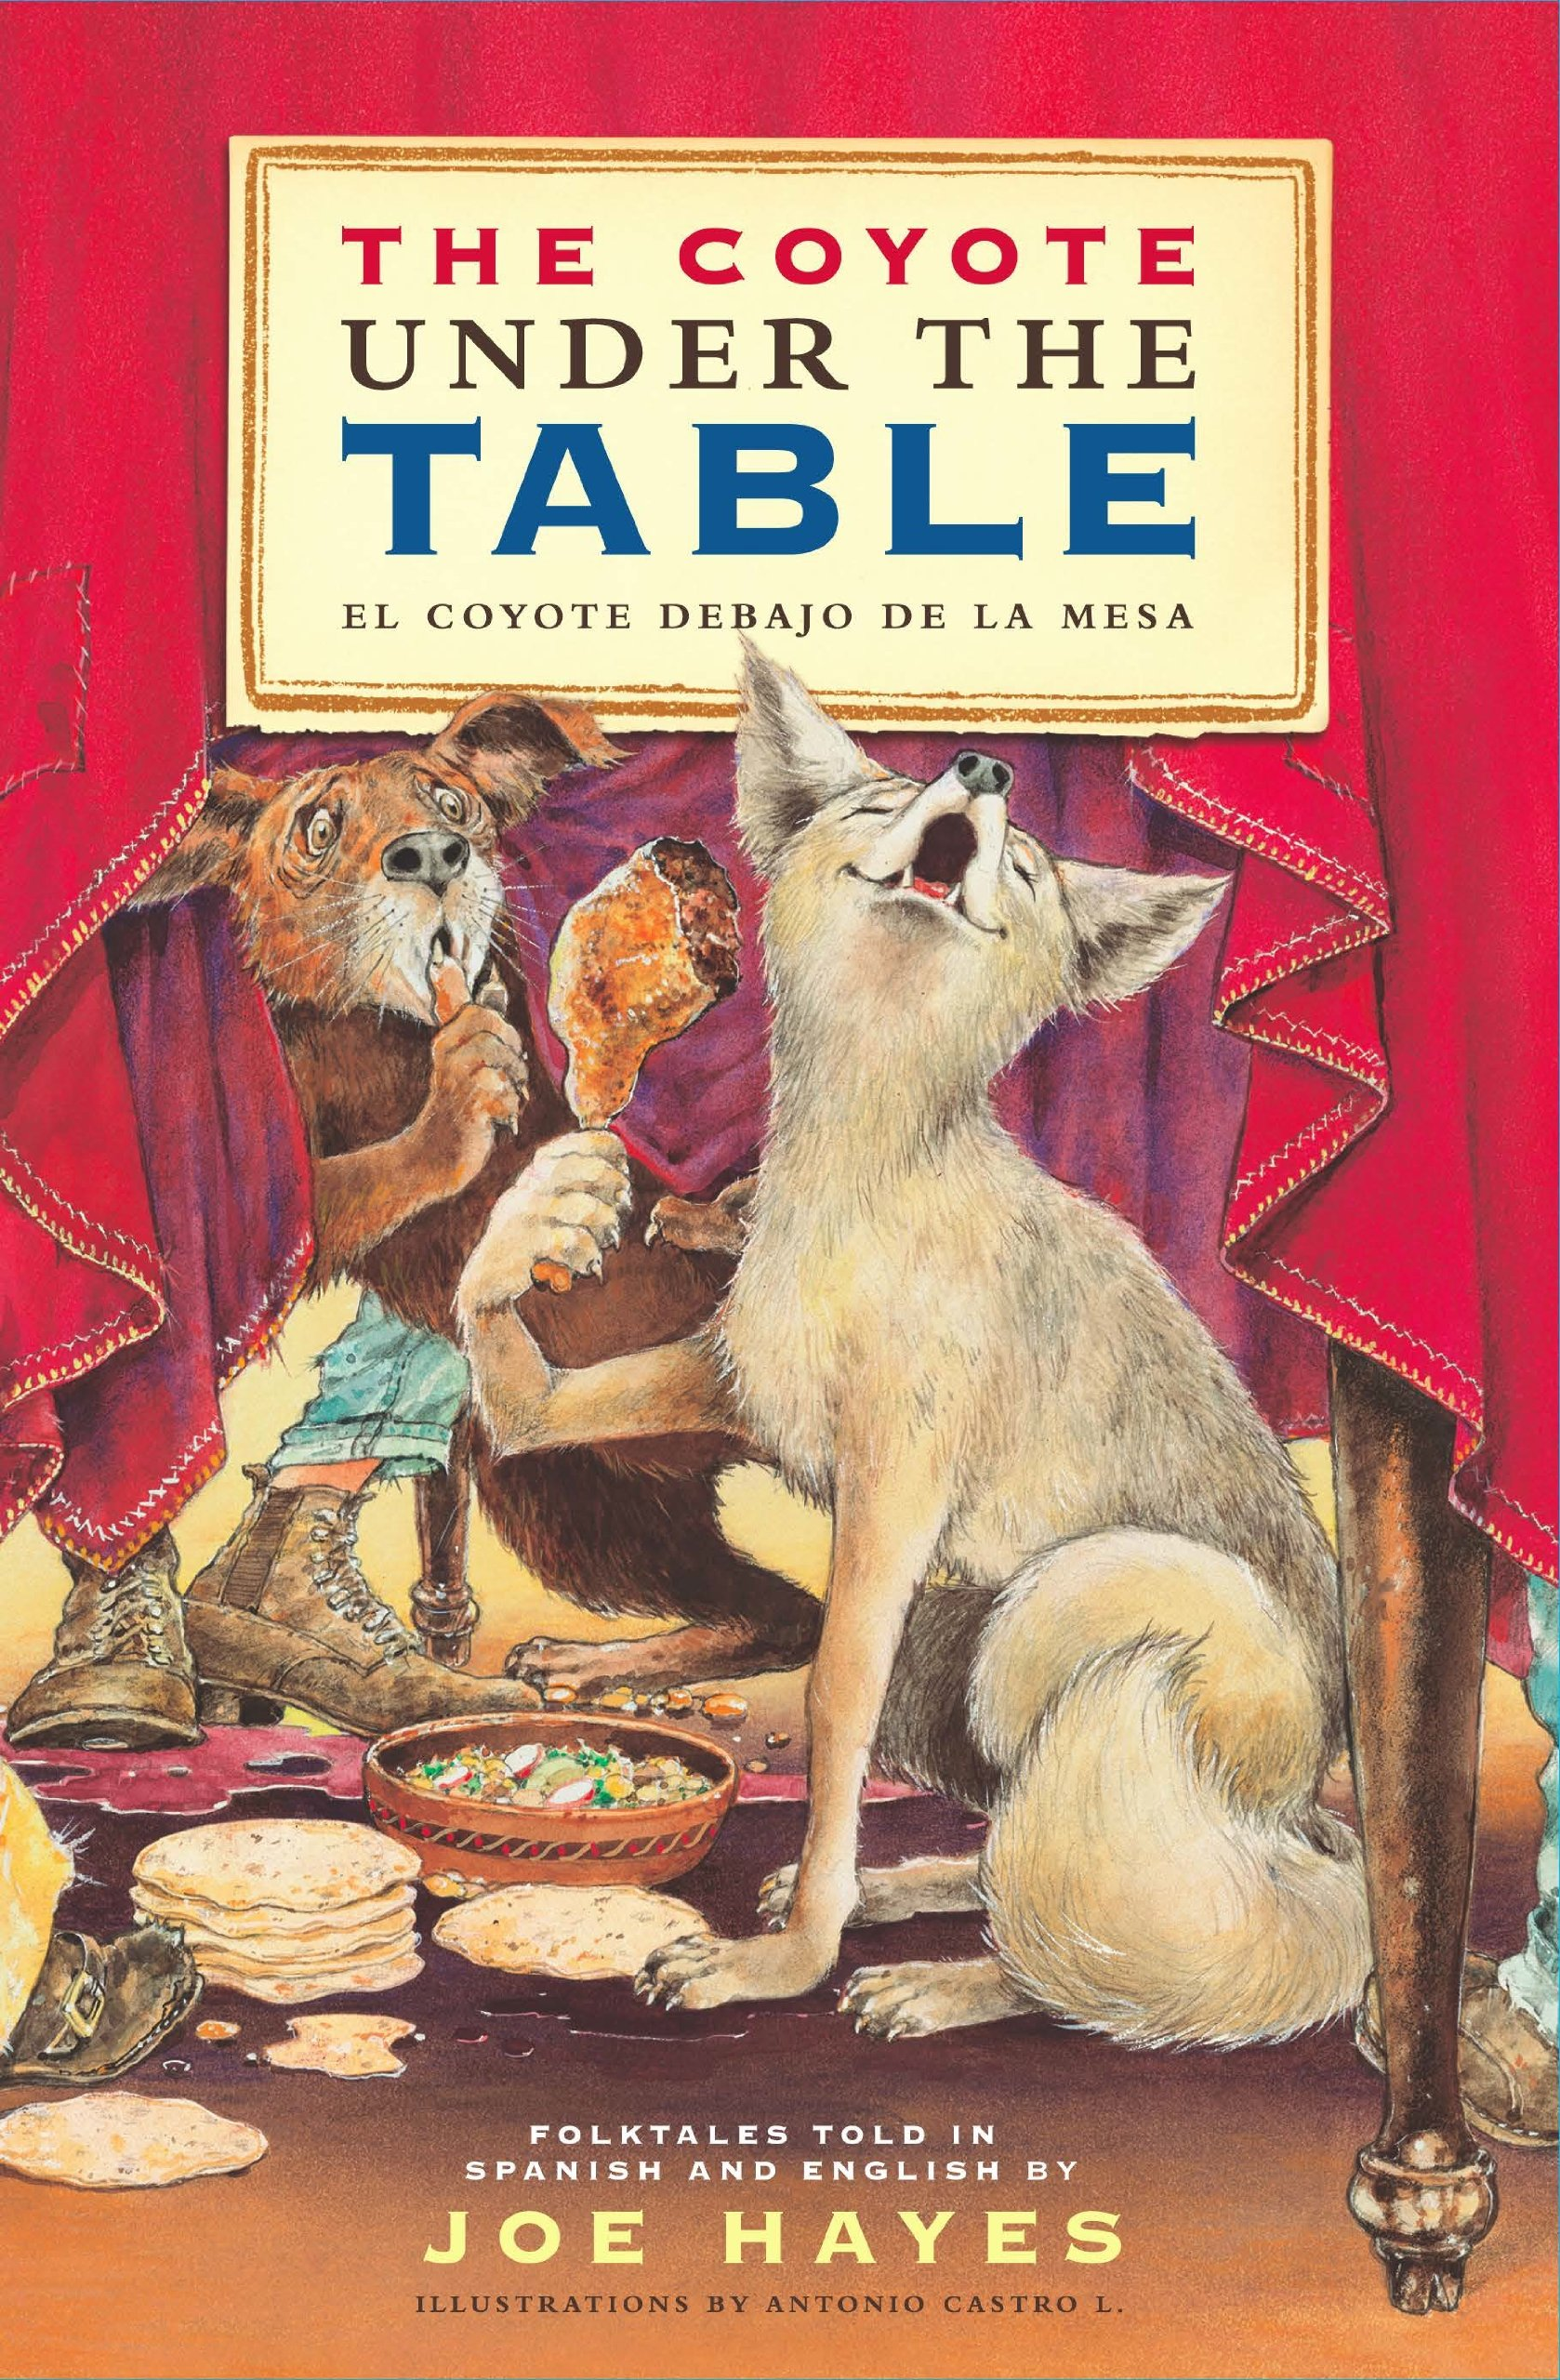 The Coyote Under the Table/El coyote debajo de la mesa: Folk Tales Told in Spanish and English